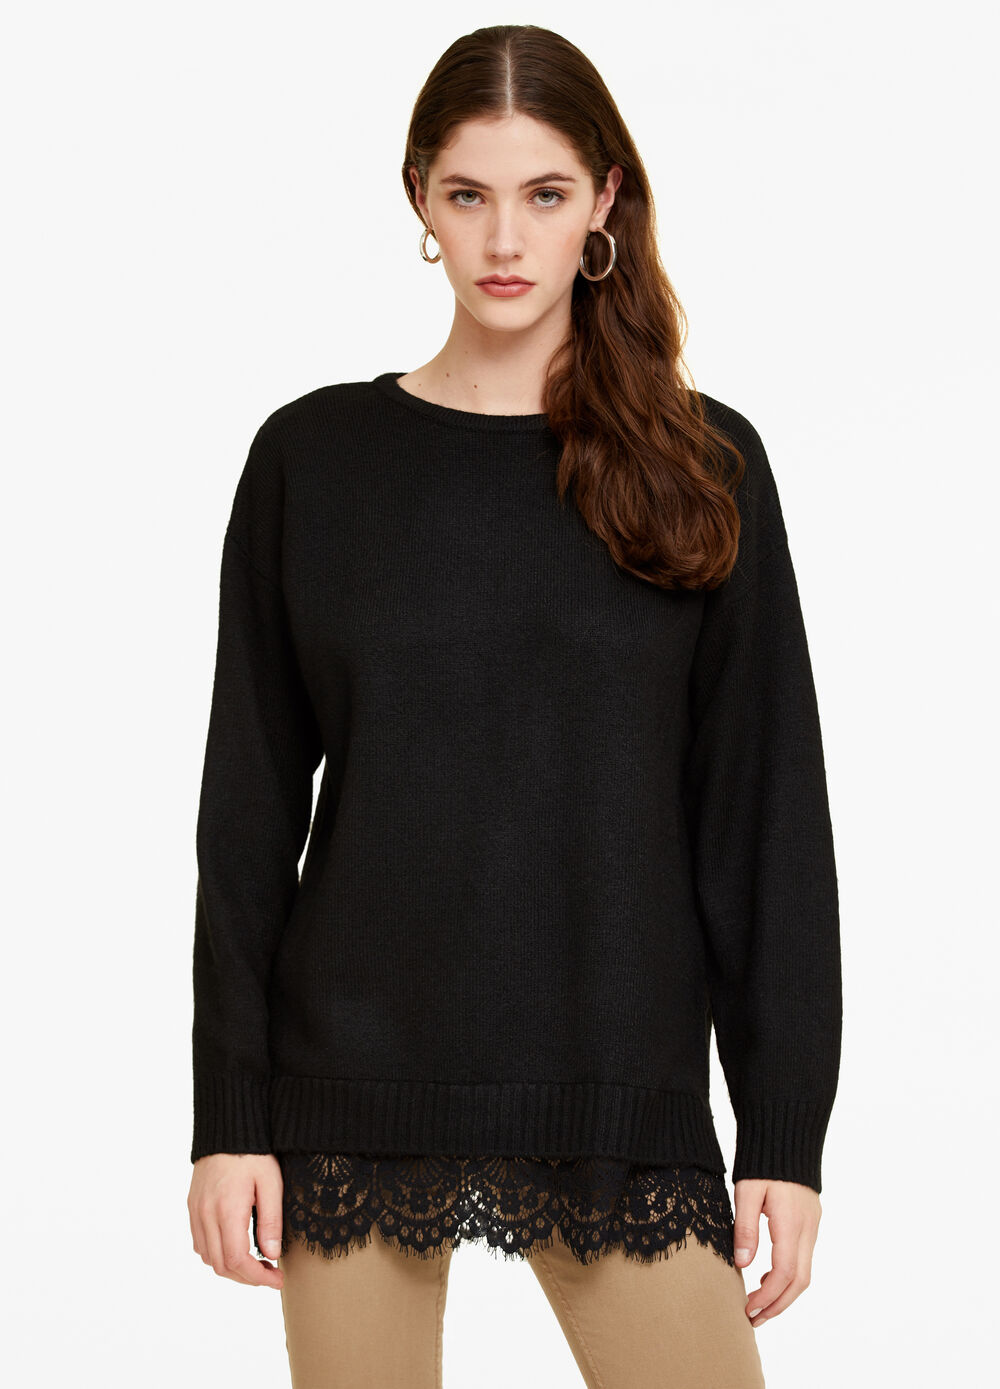 Pullover with lace insert